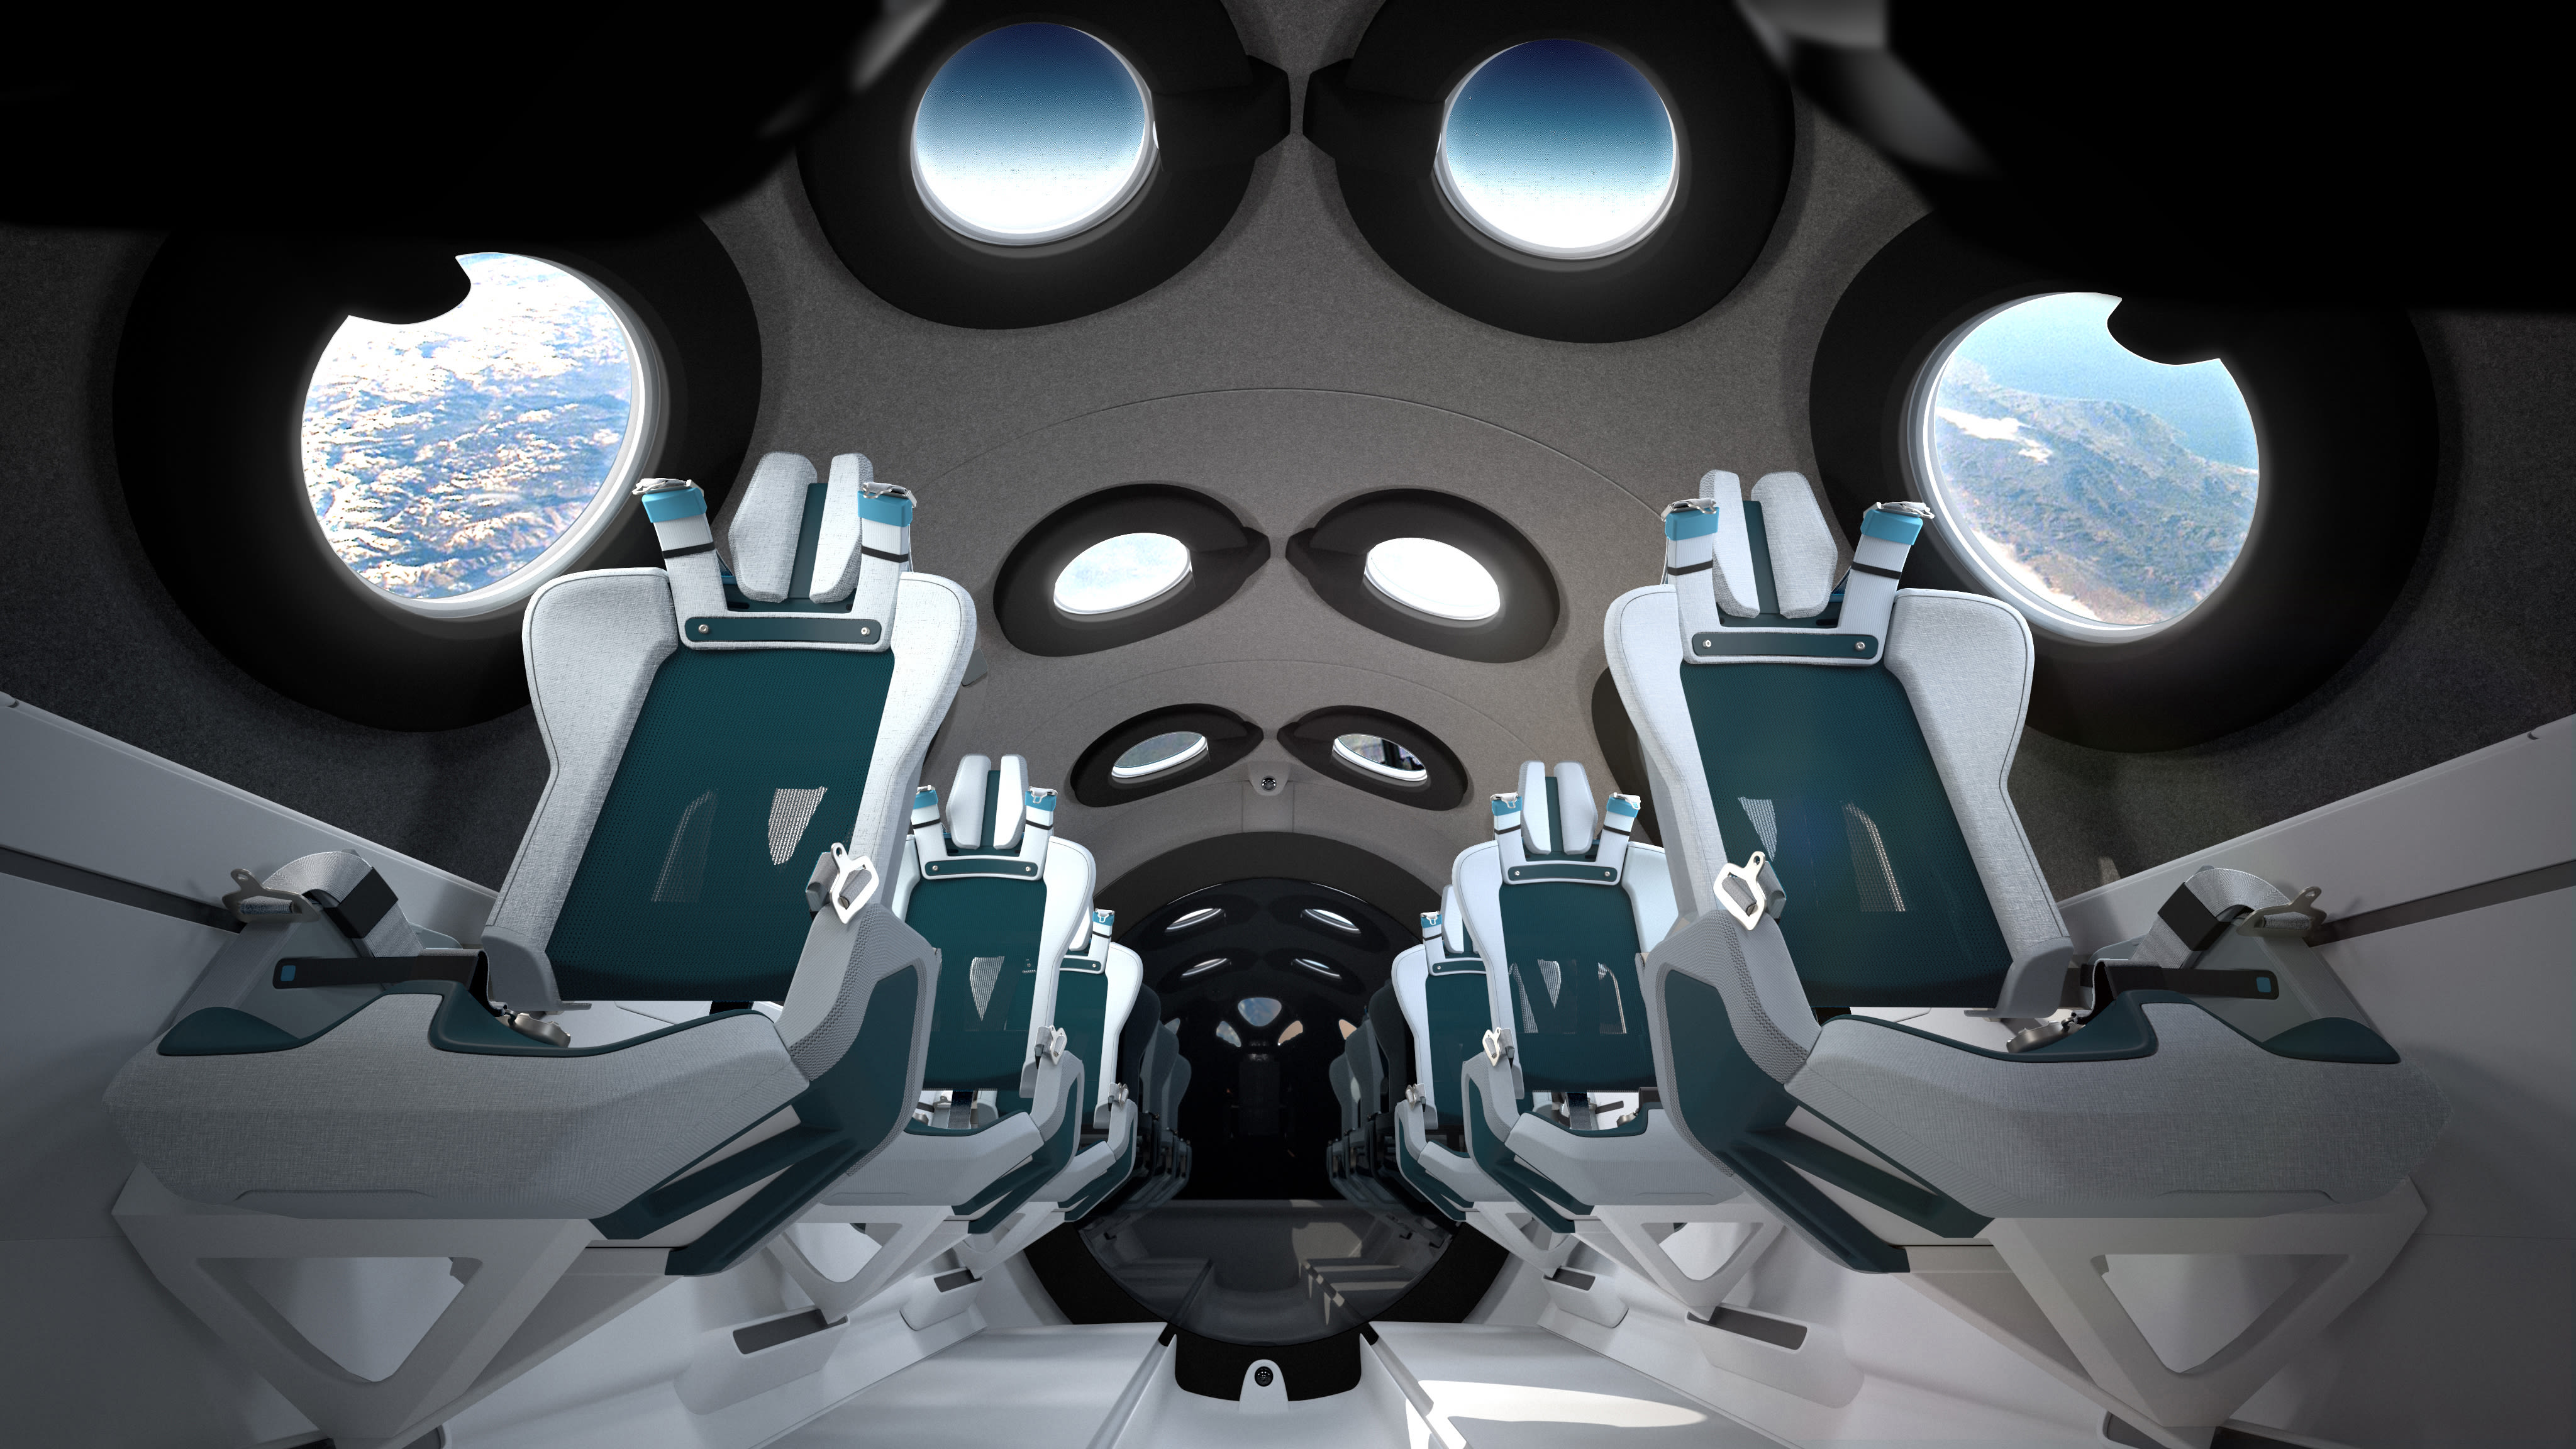 view of Virgin Galactic's Spaceship Cabin Interior